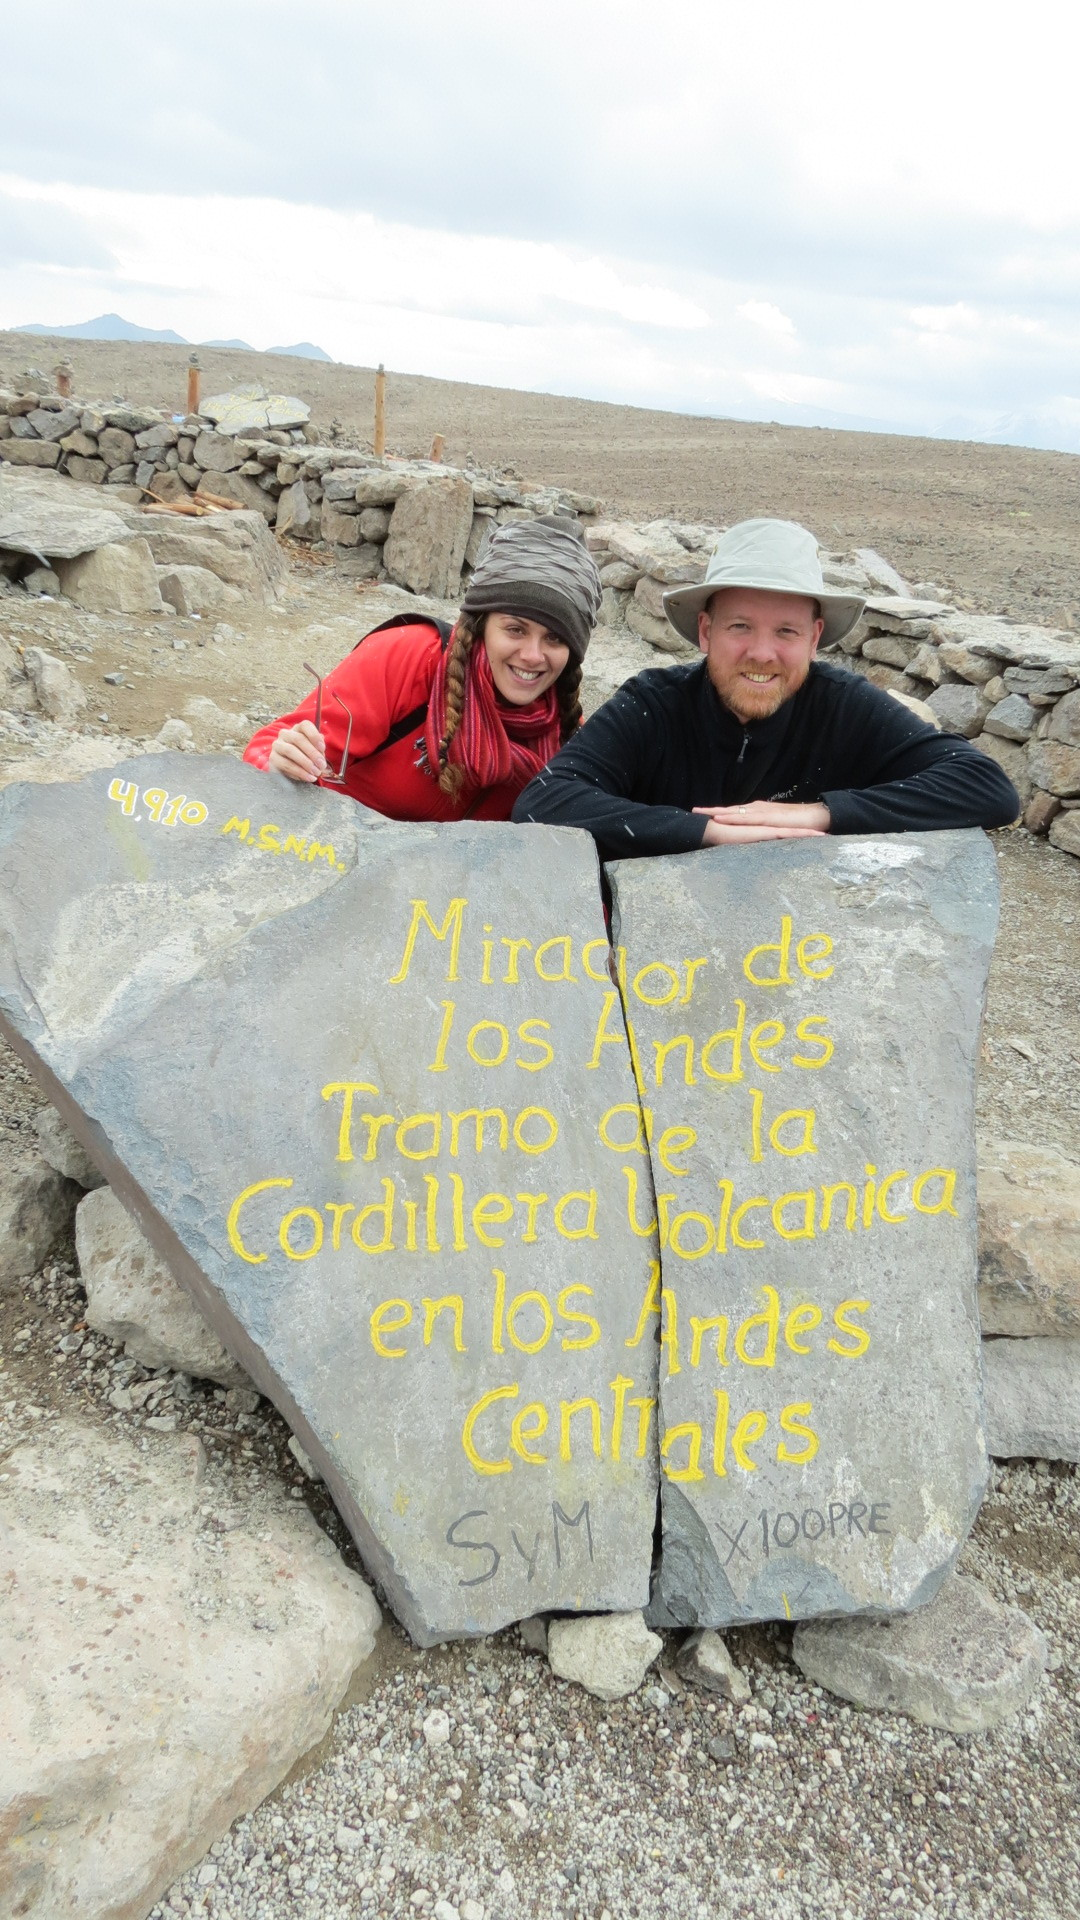 Honeymooning in Peru at 5,000m above sea level